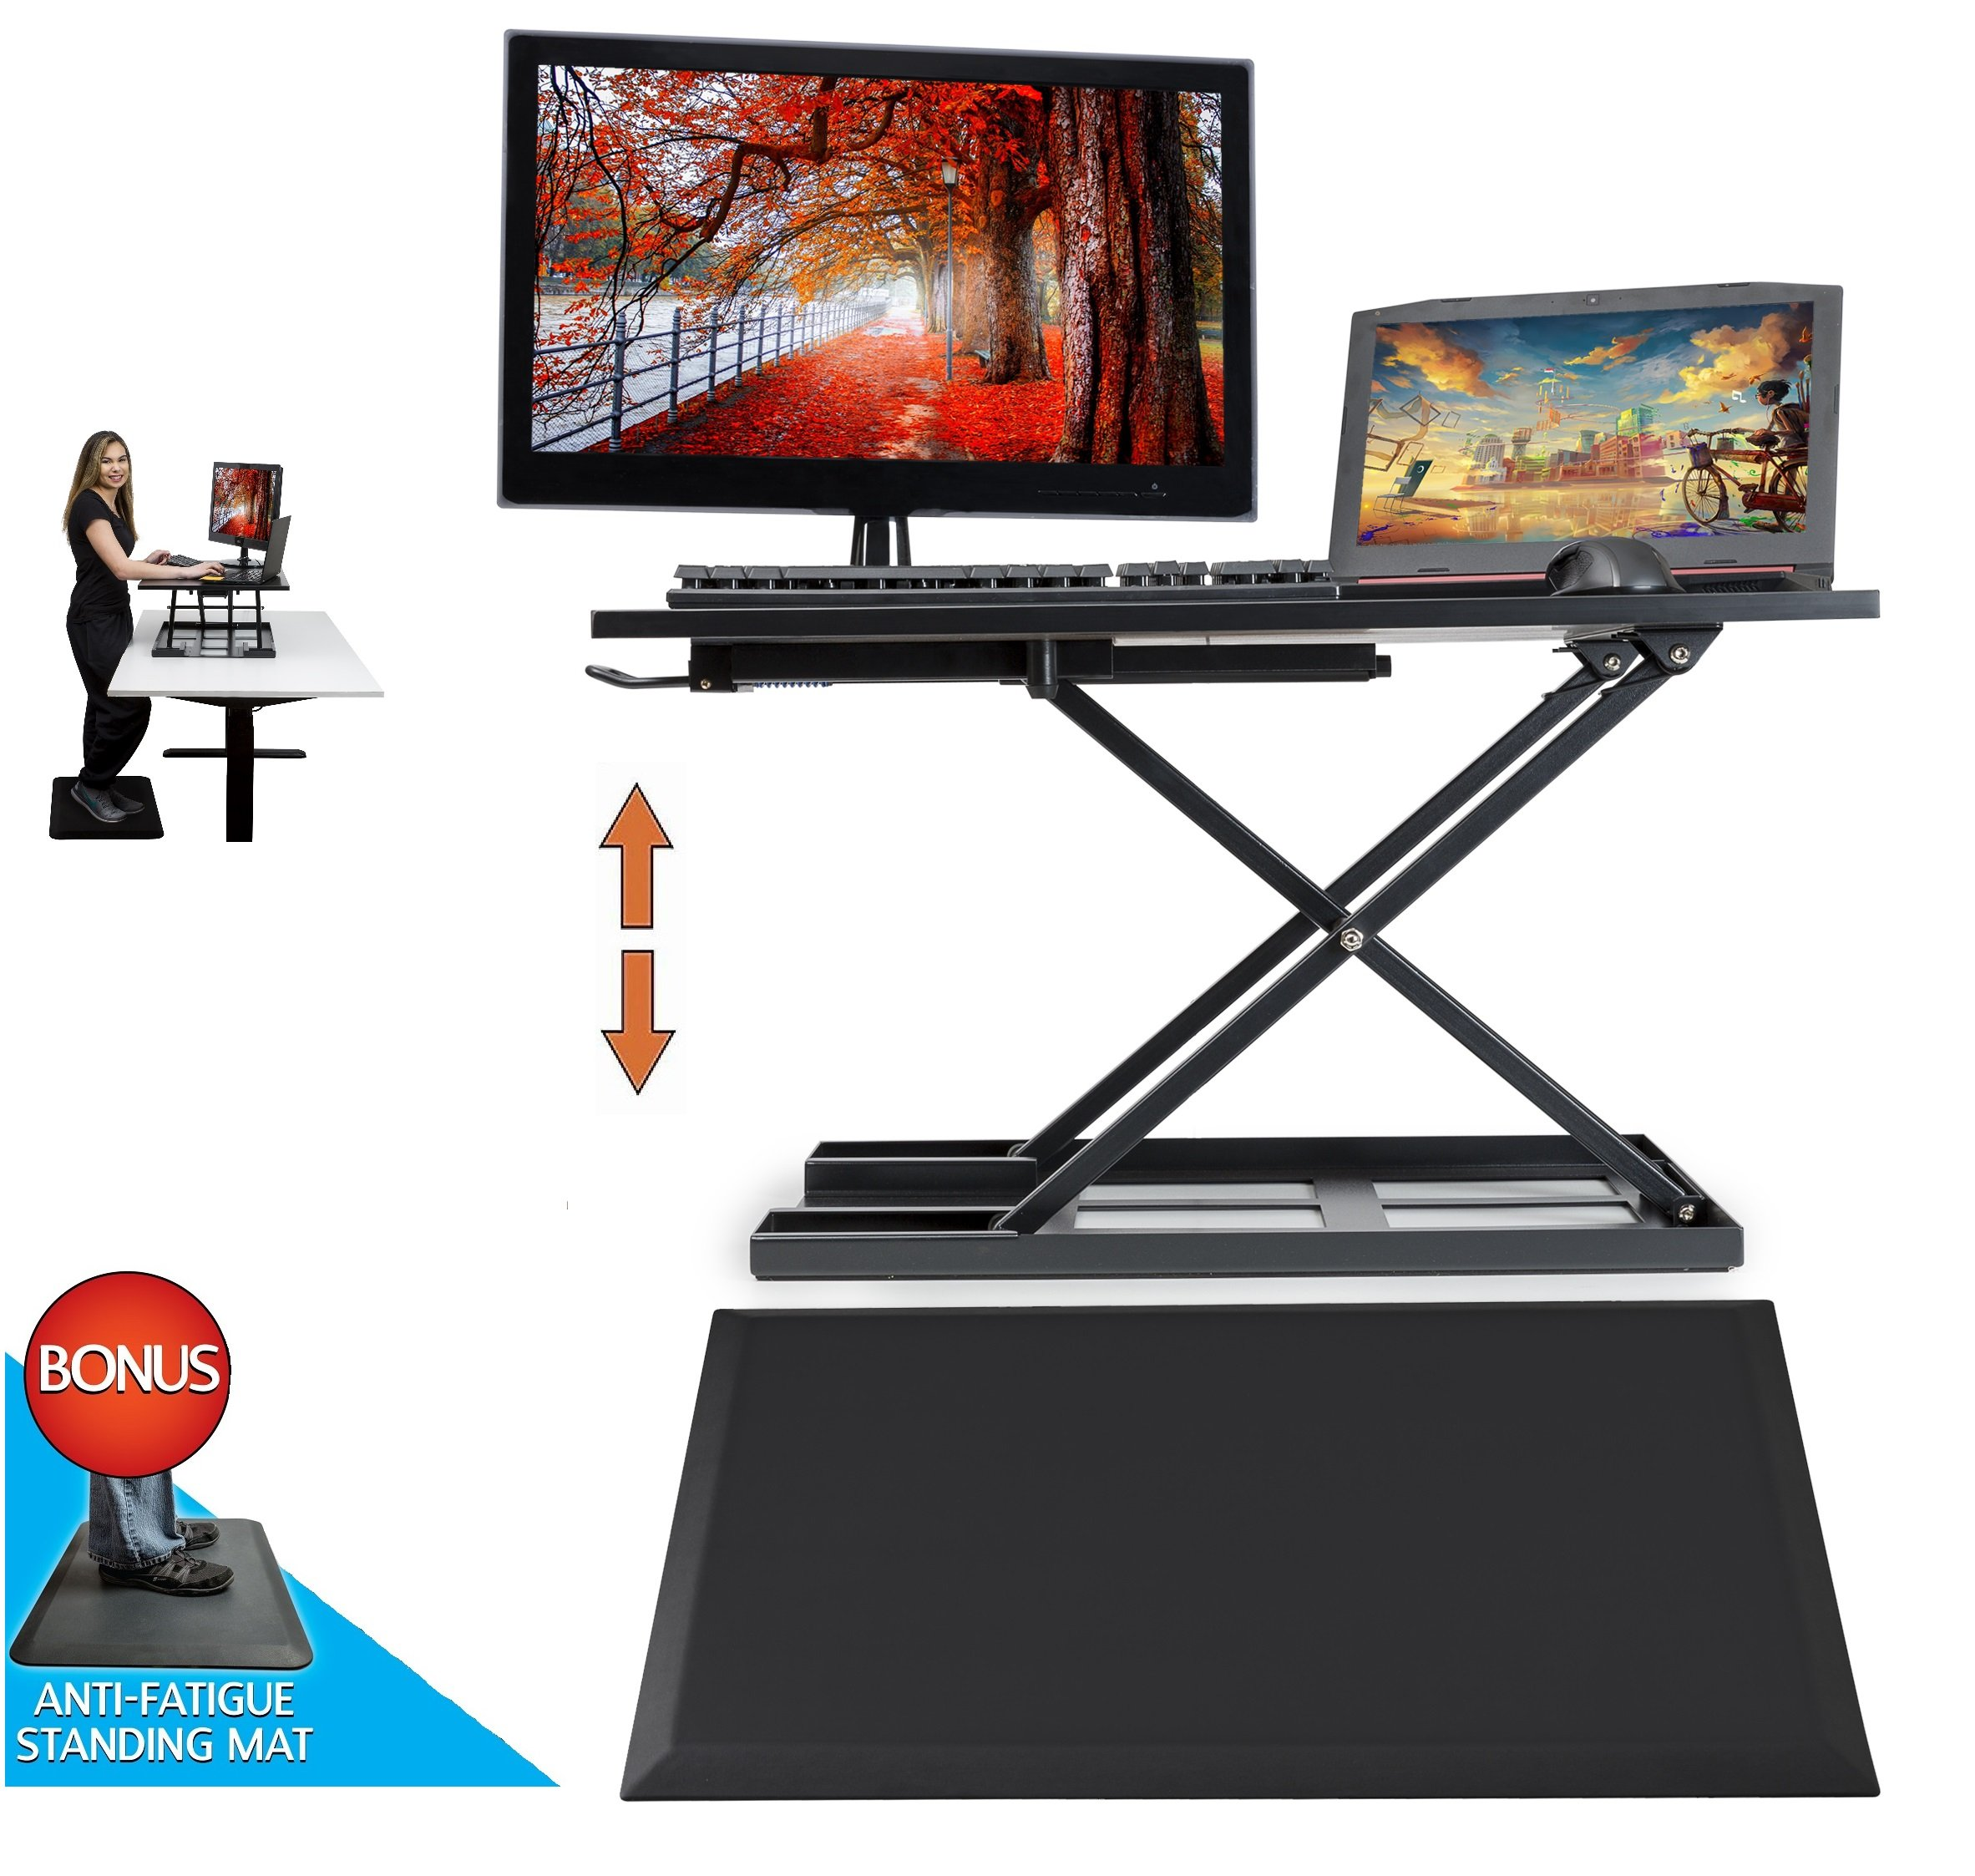 Standing Desk with Anti Fatigue Mat, Height - Adjustable Desk - Standup Workstation - Largest Surface 32 inches Wide, Convert any Desk to Sit Stand up, COMES FULLY ASSEMBLED, Koozam Office